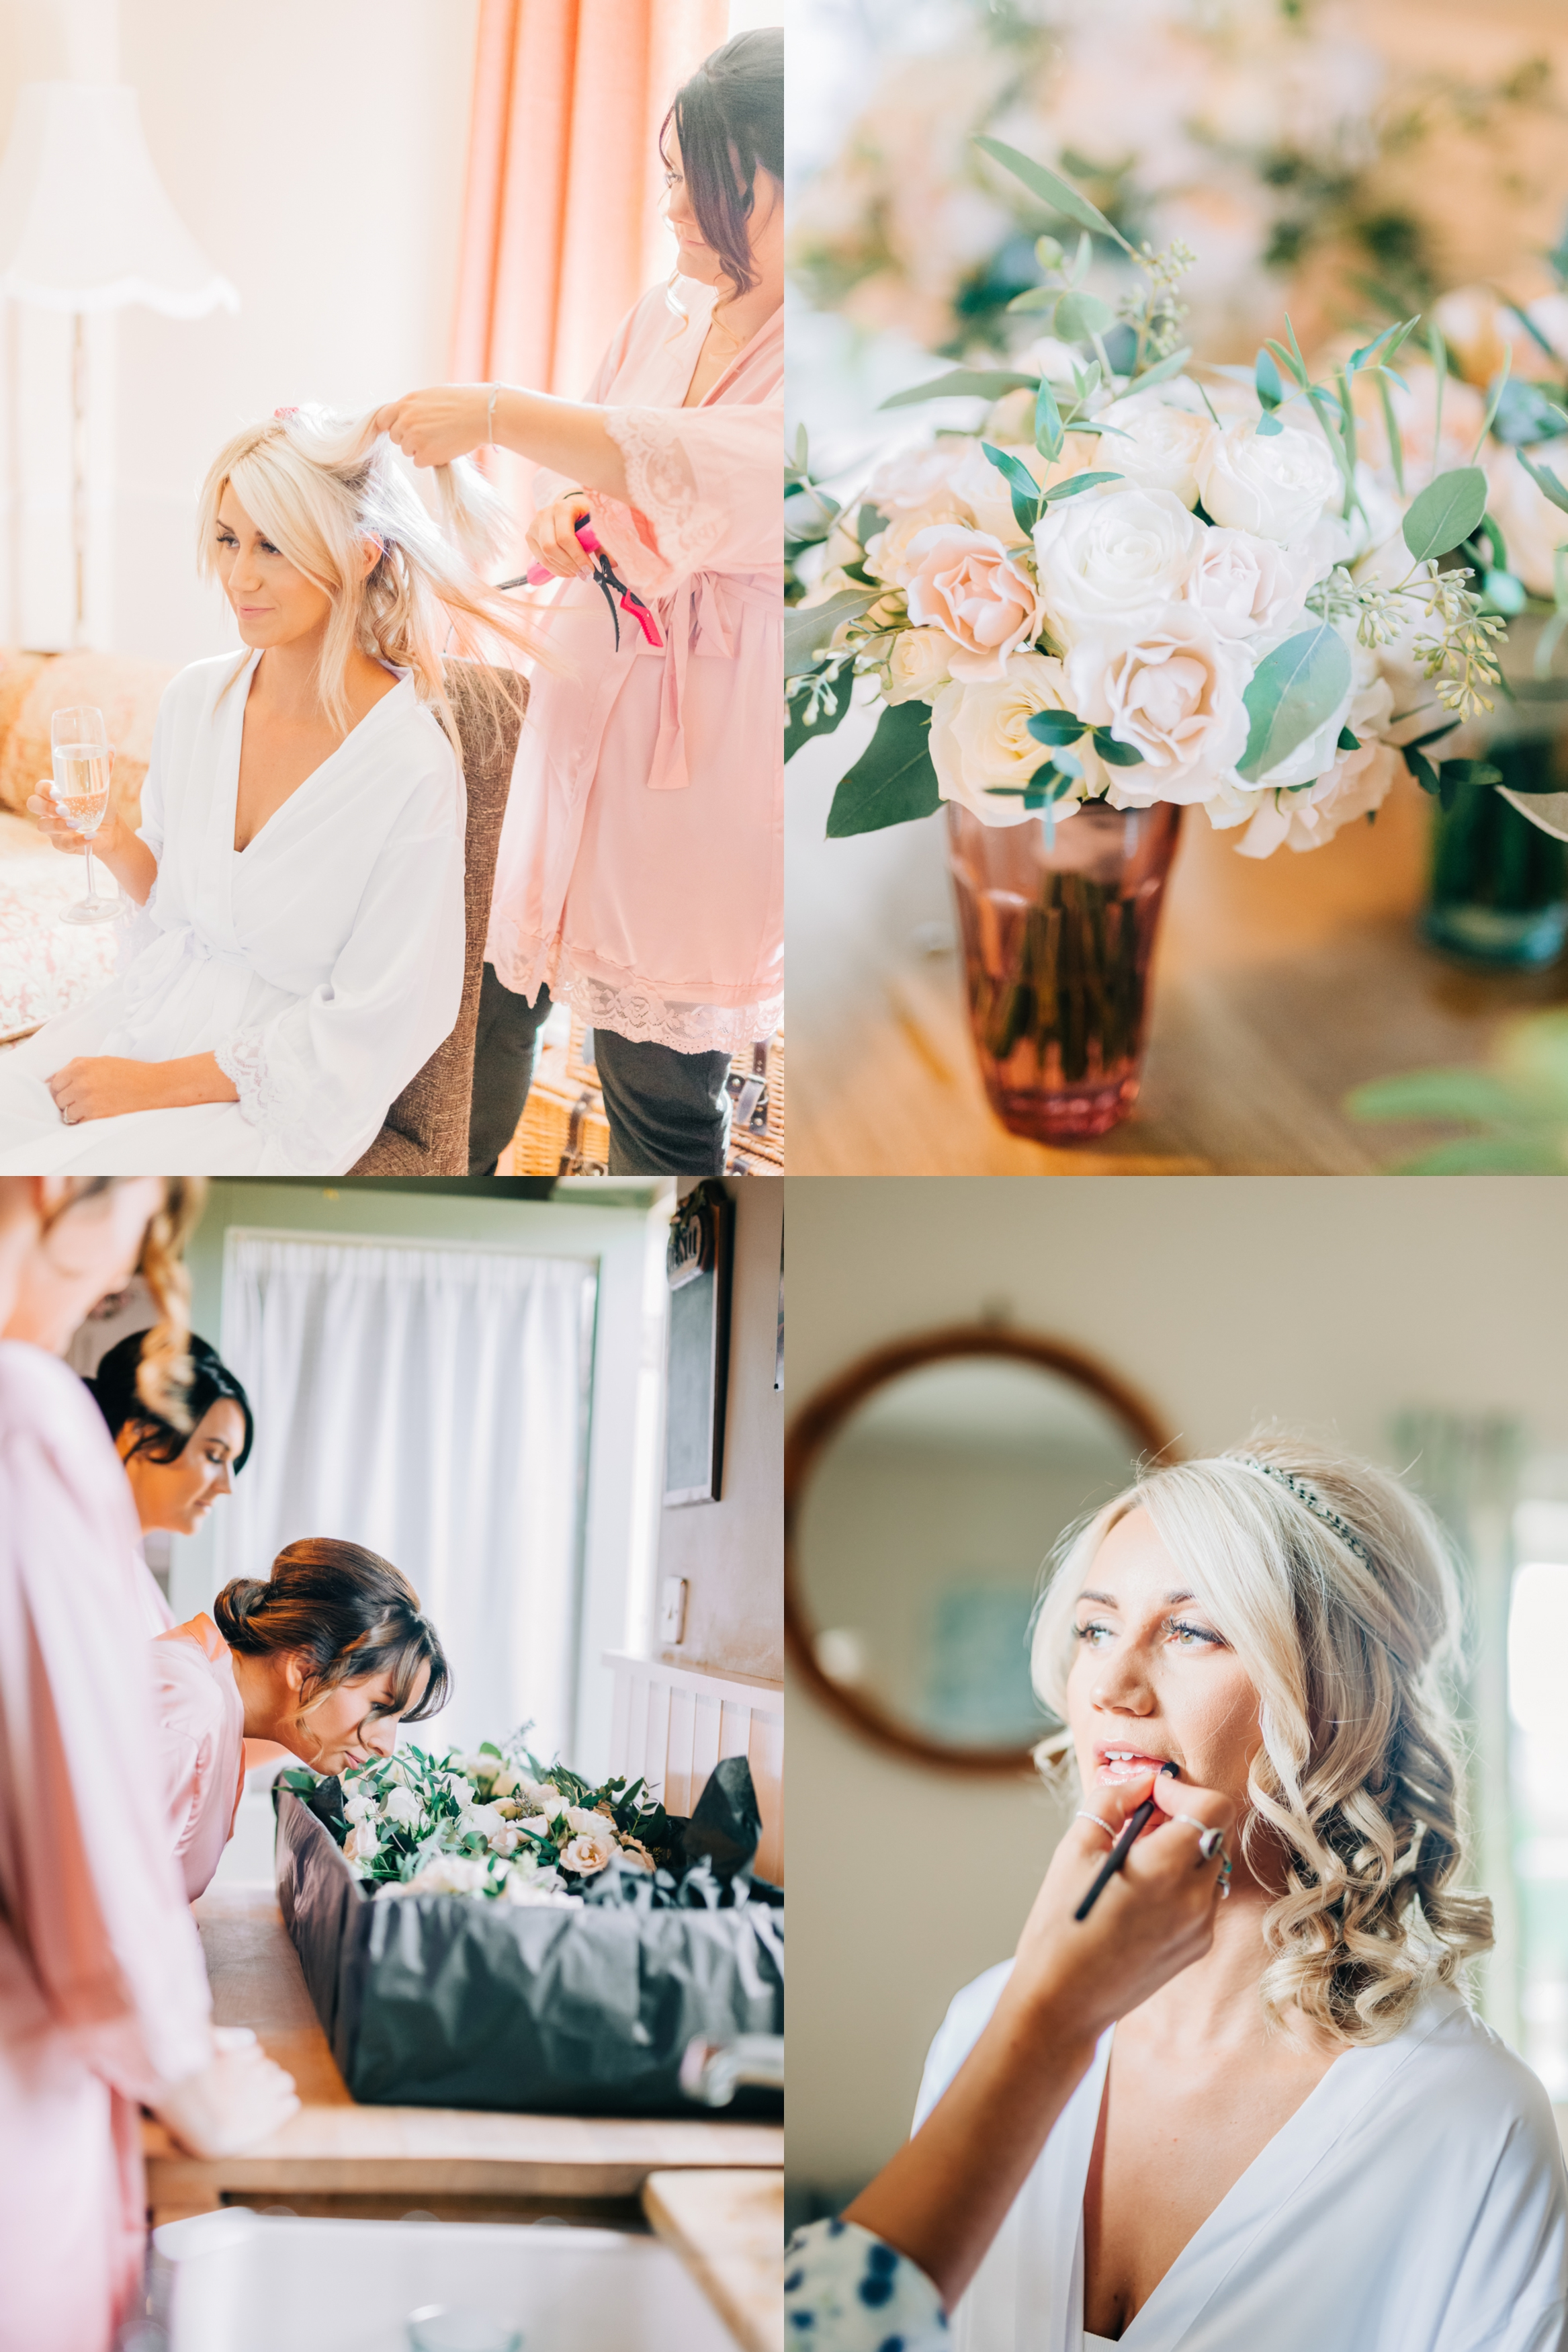 Bridal Preparations, bridesmaids smelling bouquet